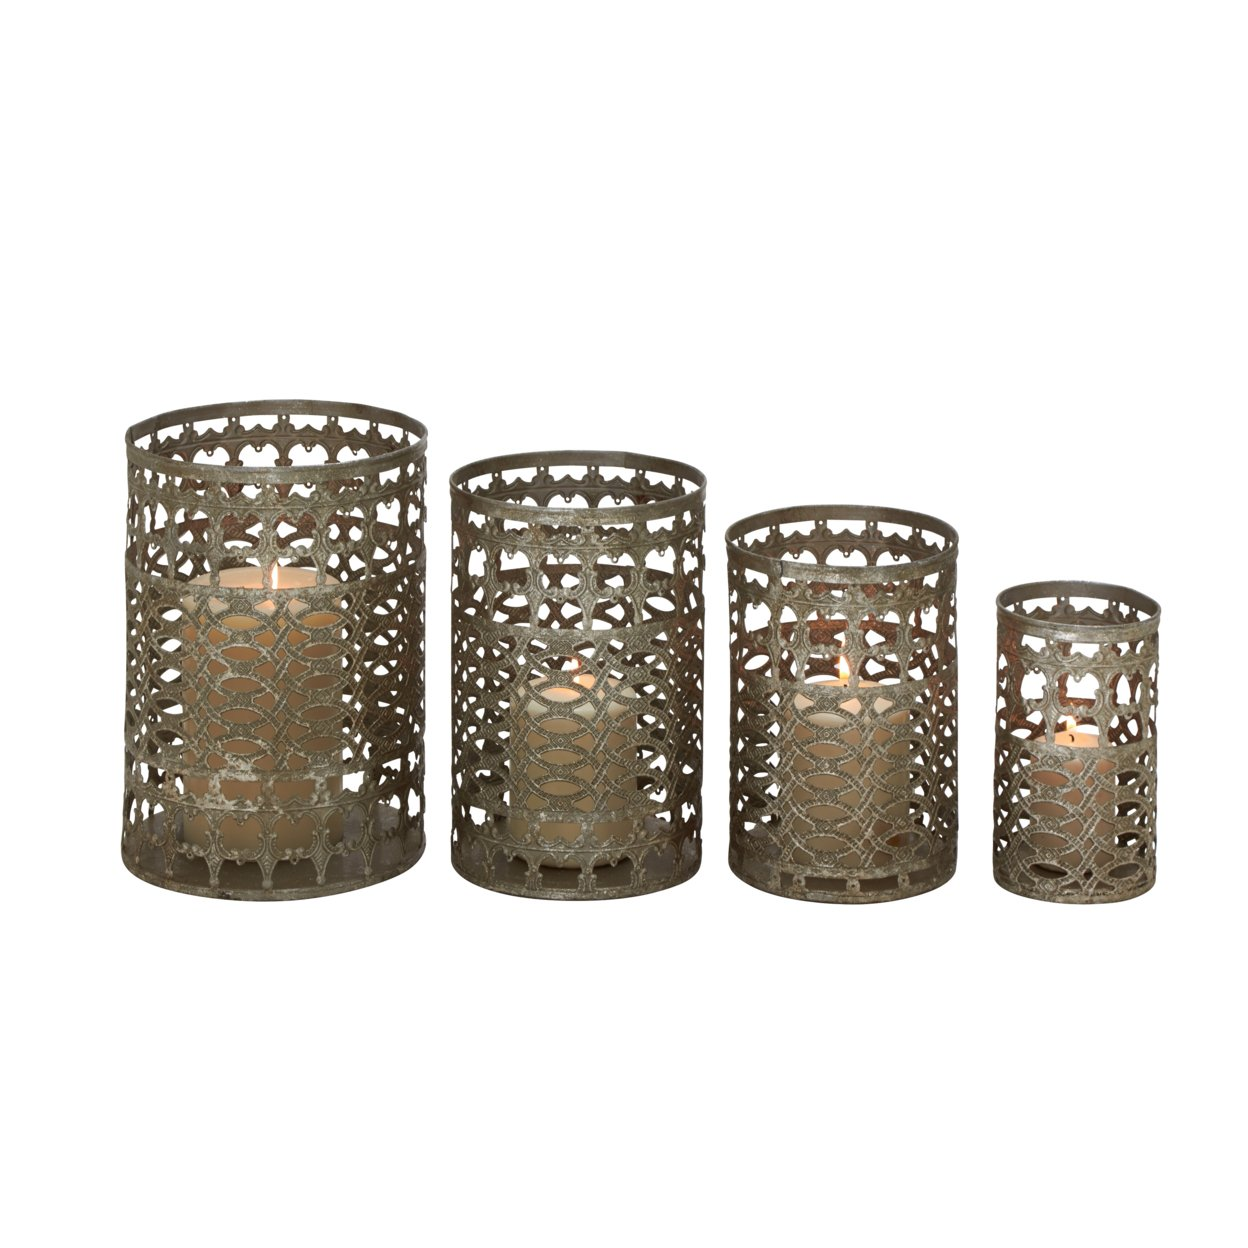 Set Of 4 Radiating & Unique Styled Metal Candle Holder 59c24579e224615b7110449a